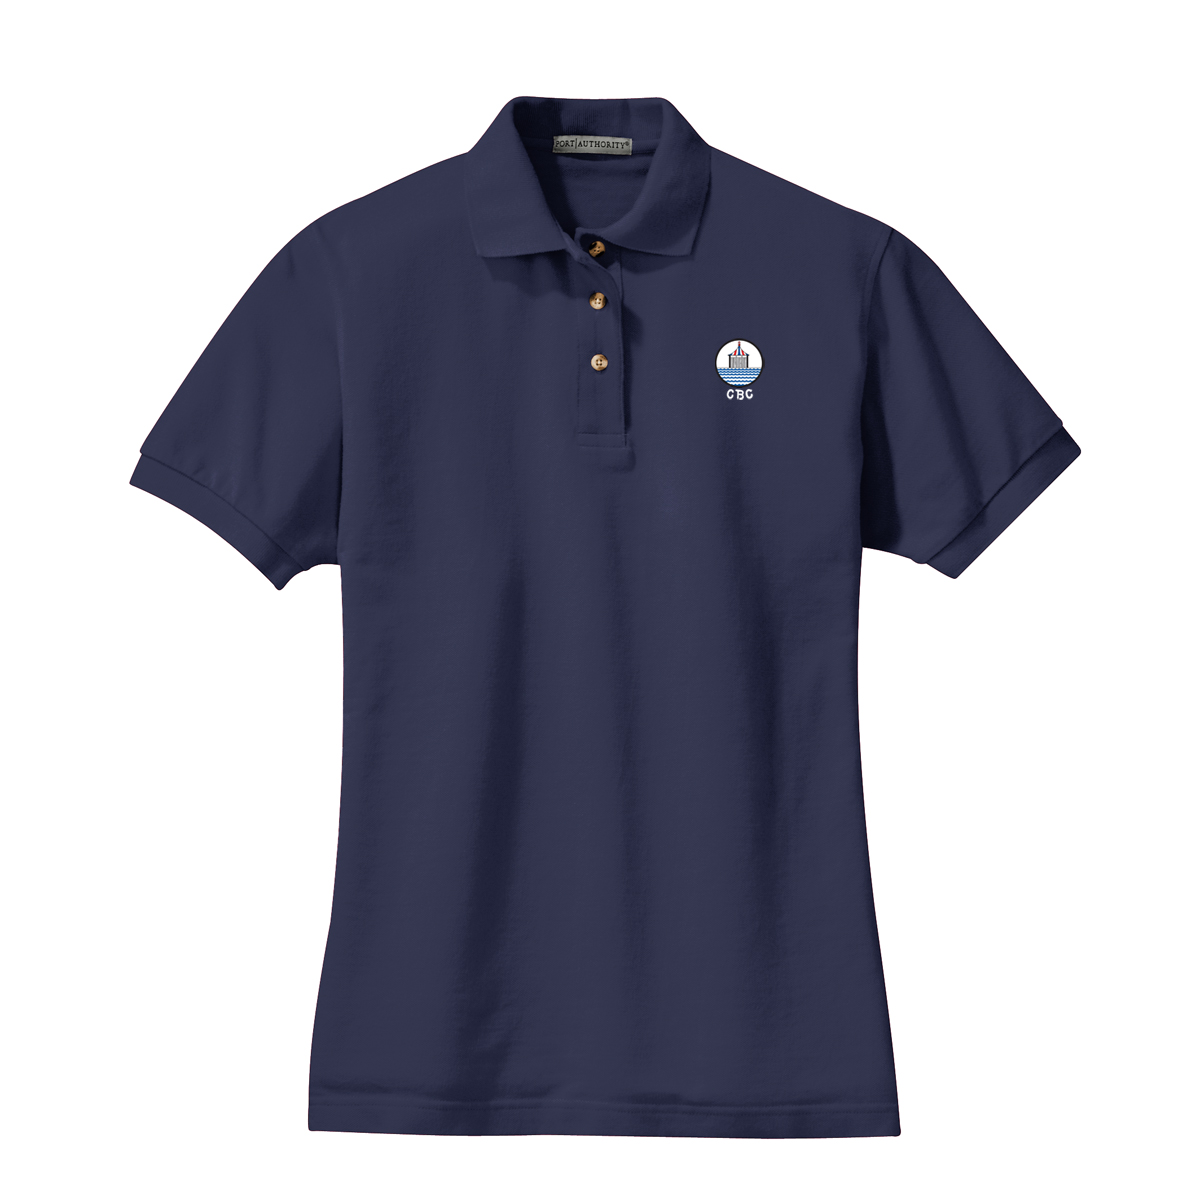 Chappaquiddick Beach Club - Women's Cotton Polo